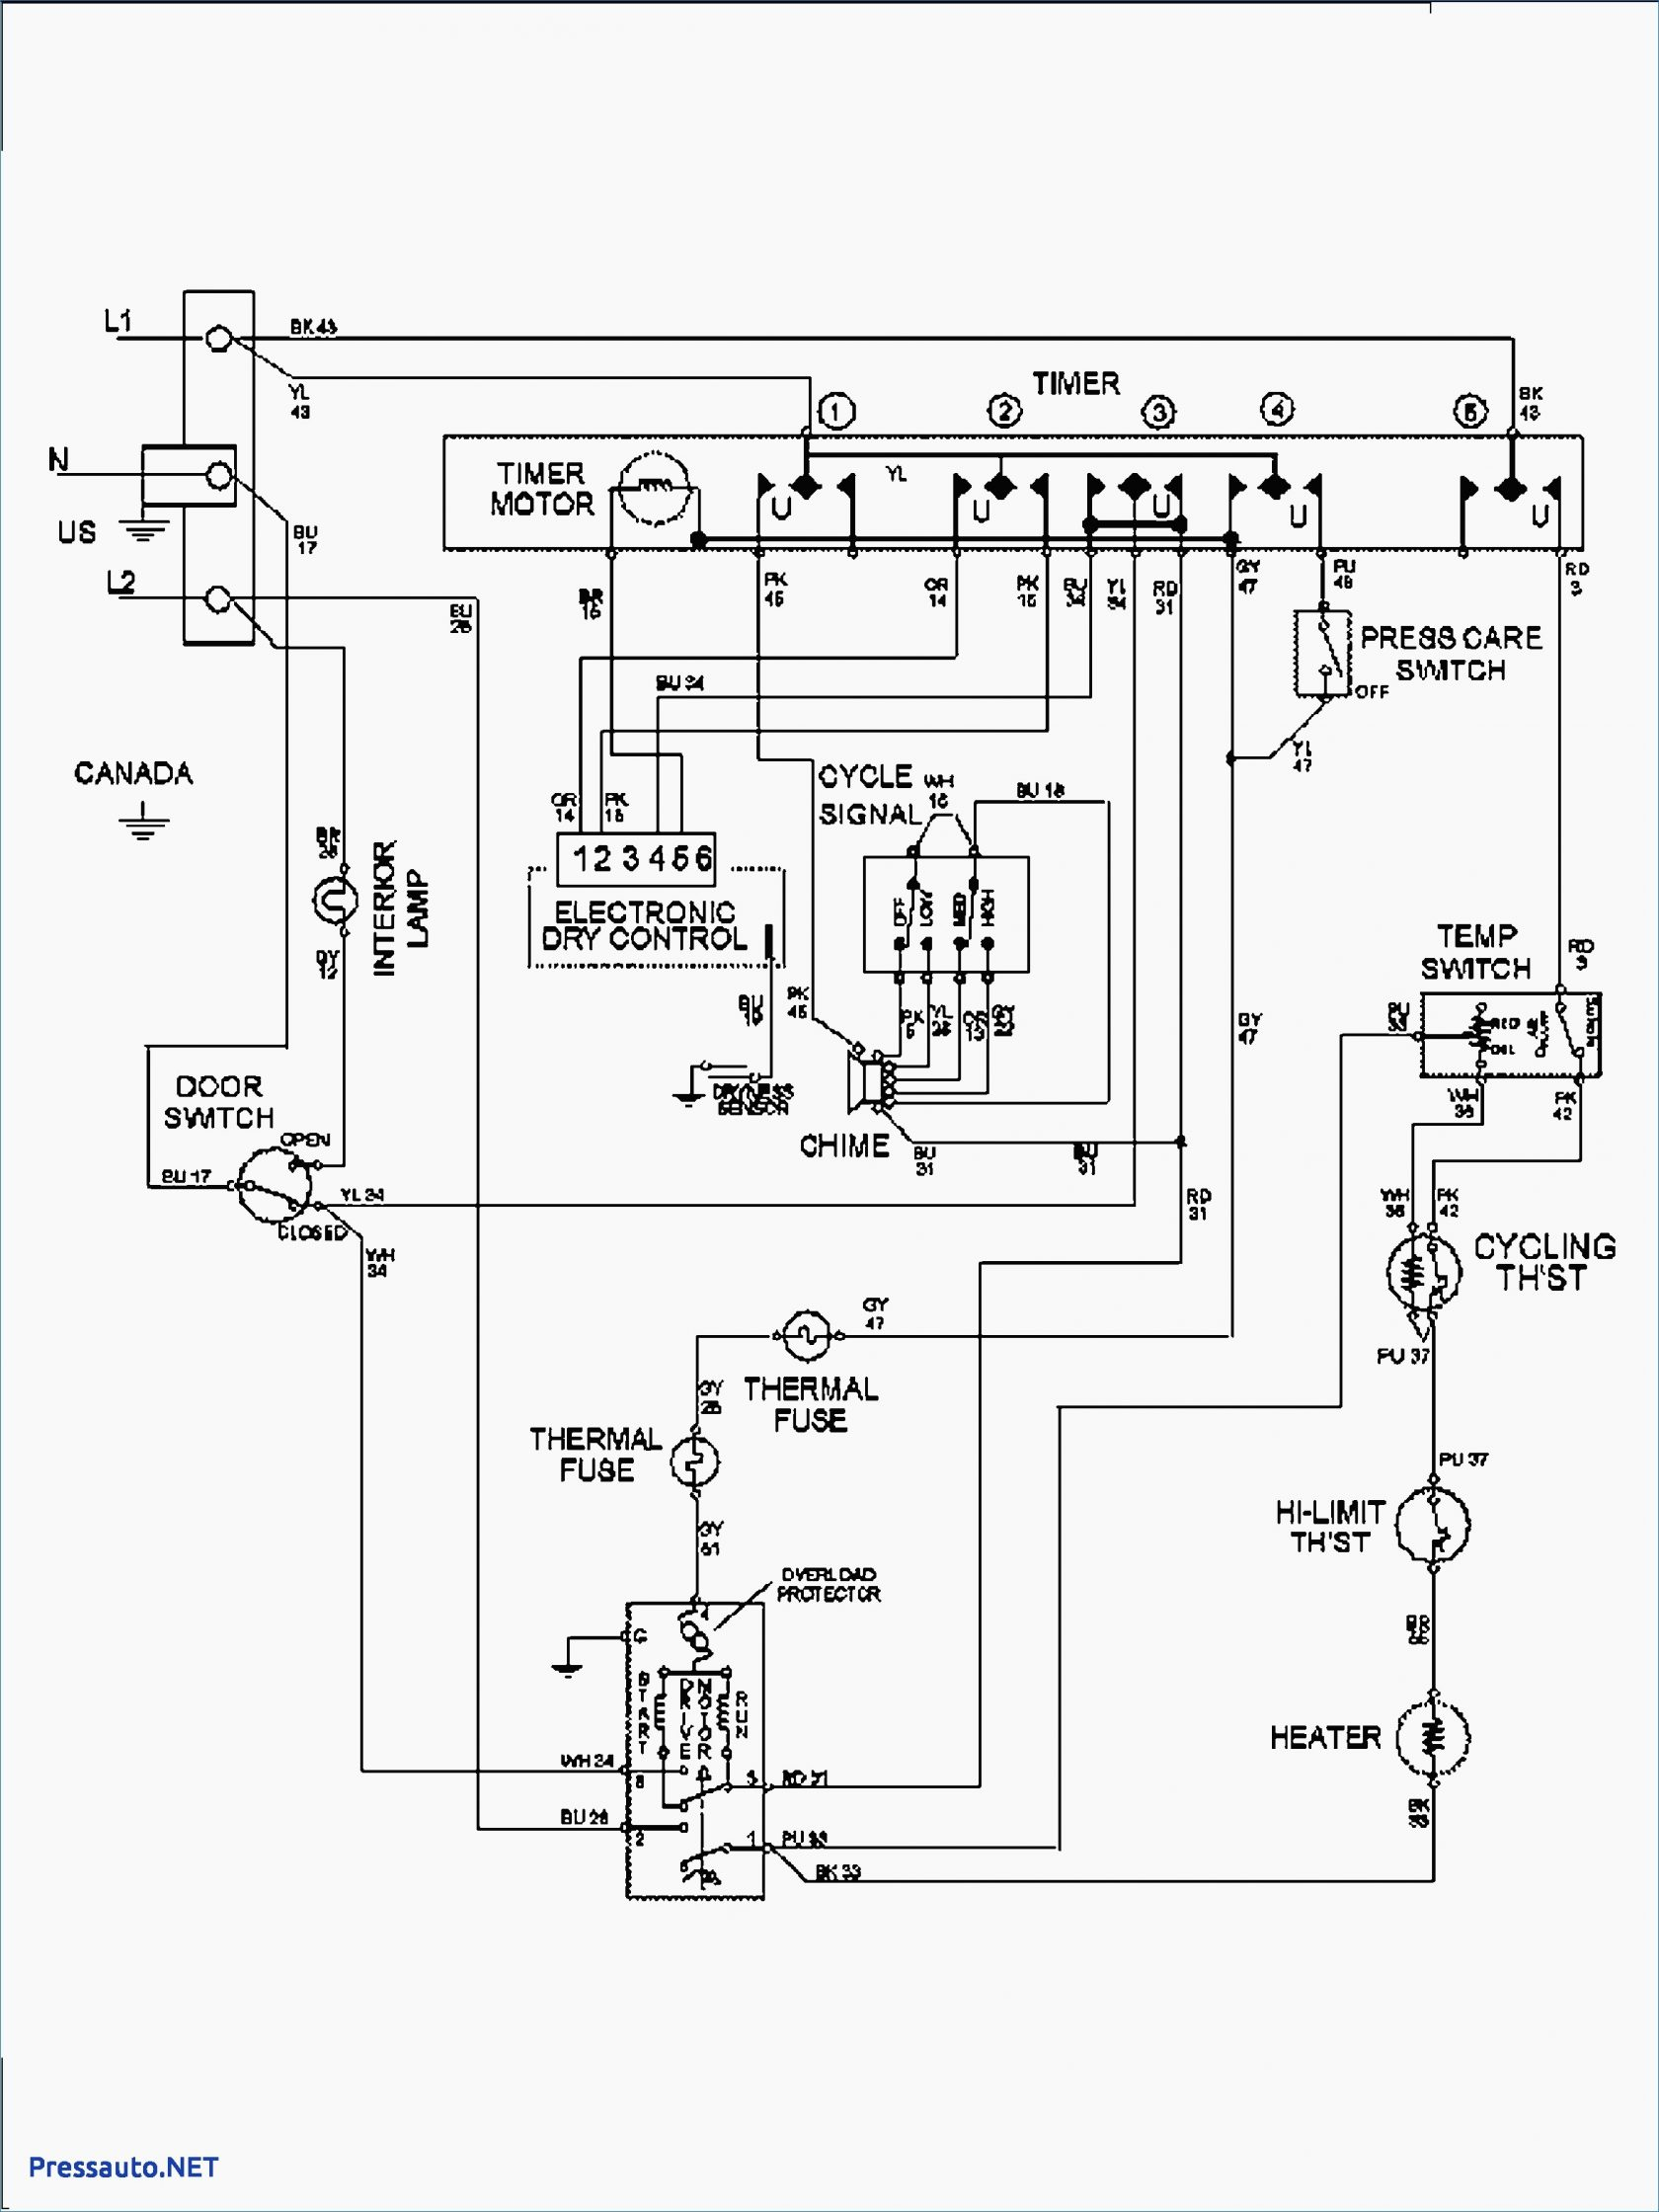 1680x2240 amana ads s8 serviceanual in heat pump wiring diagram and ptac